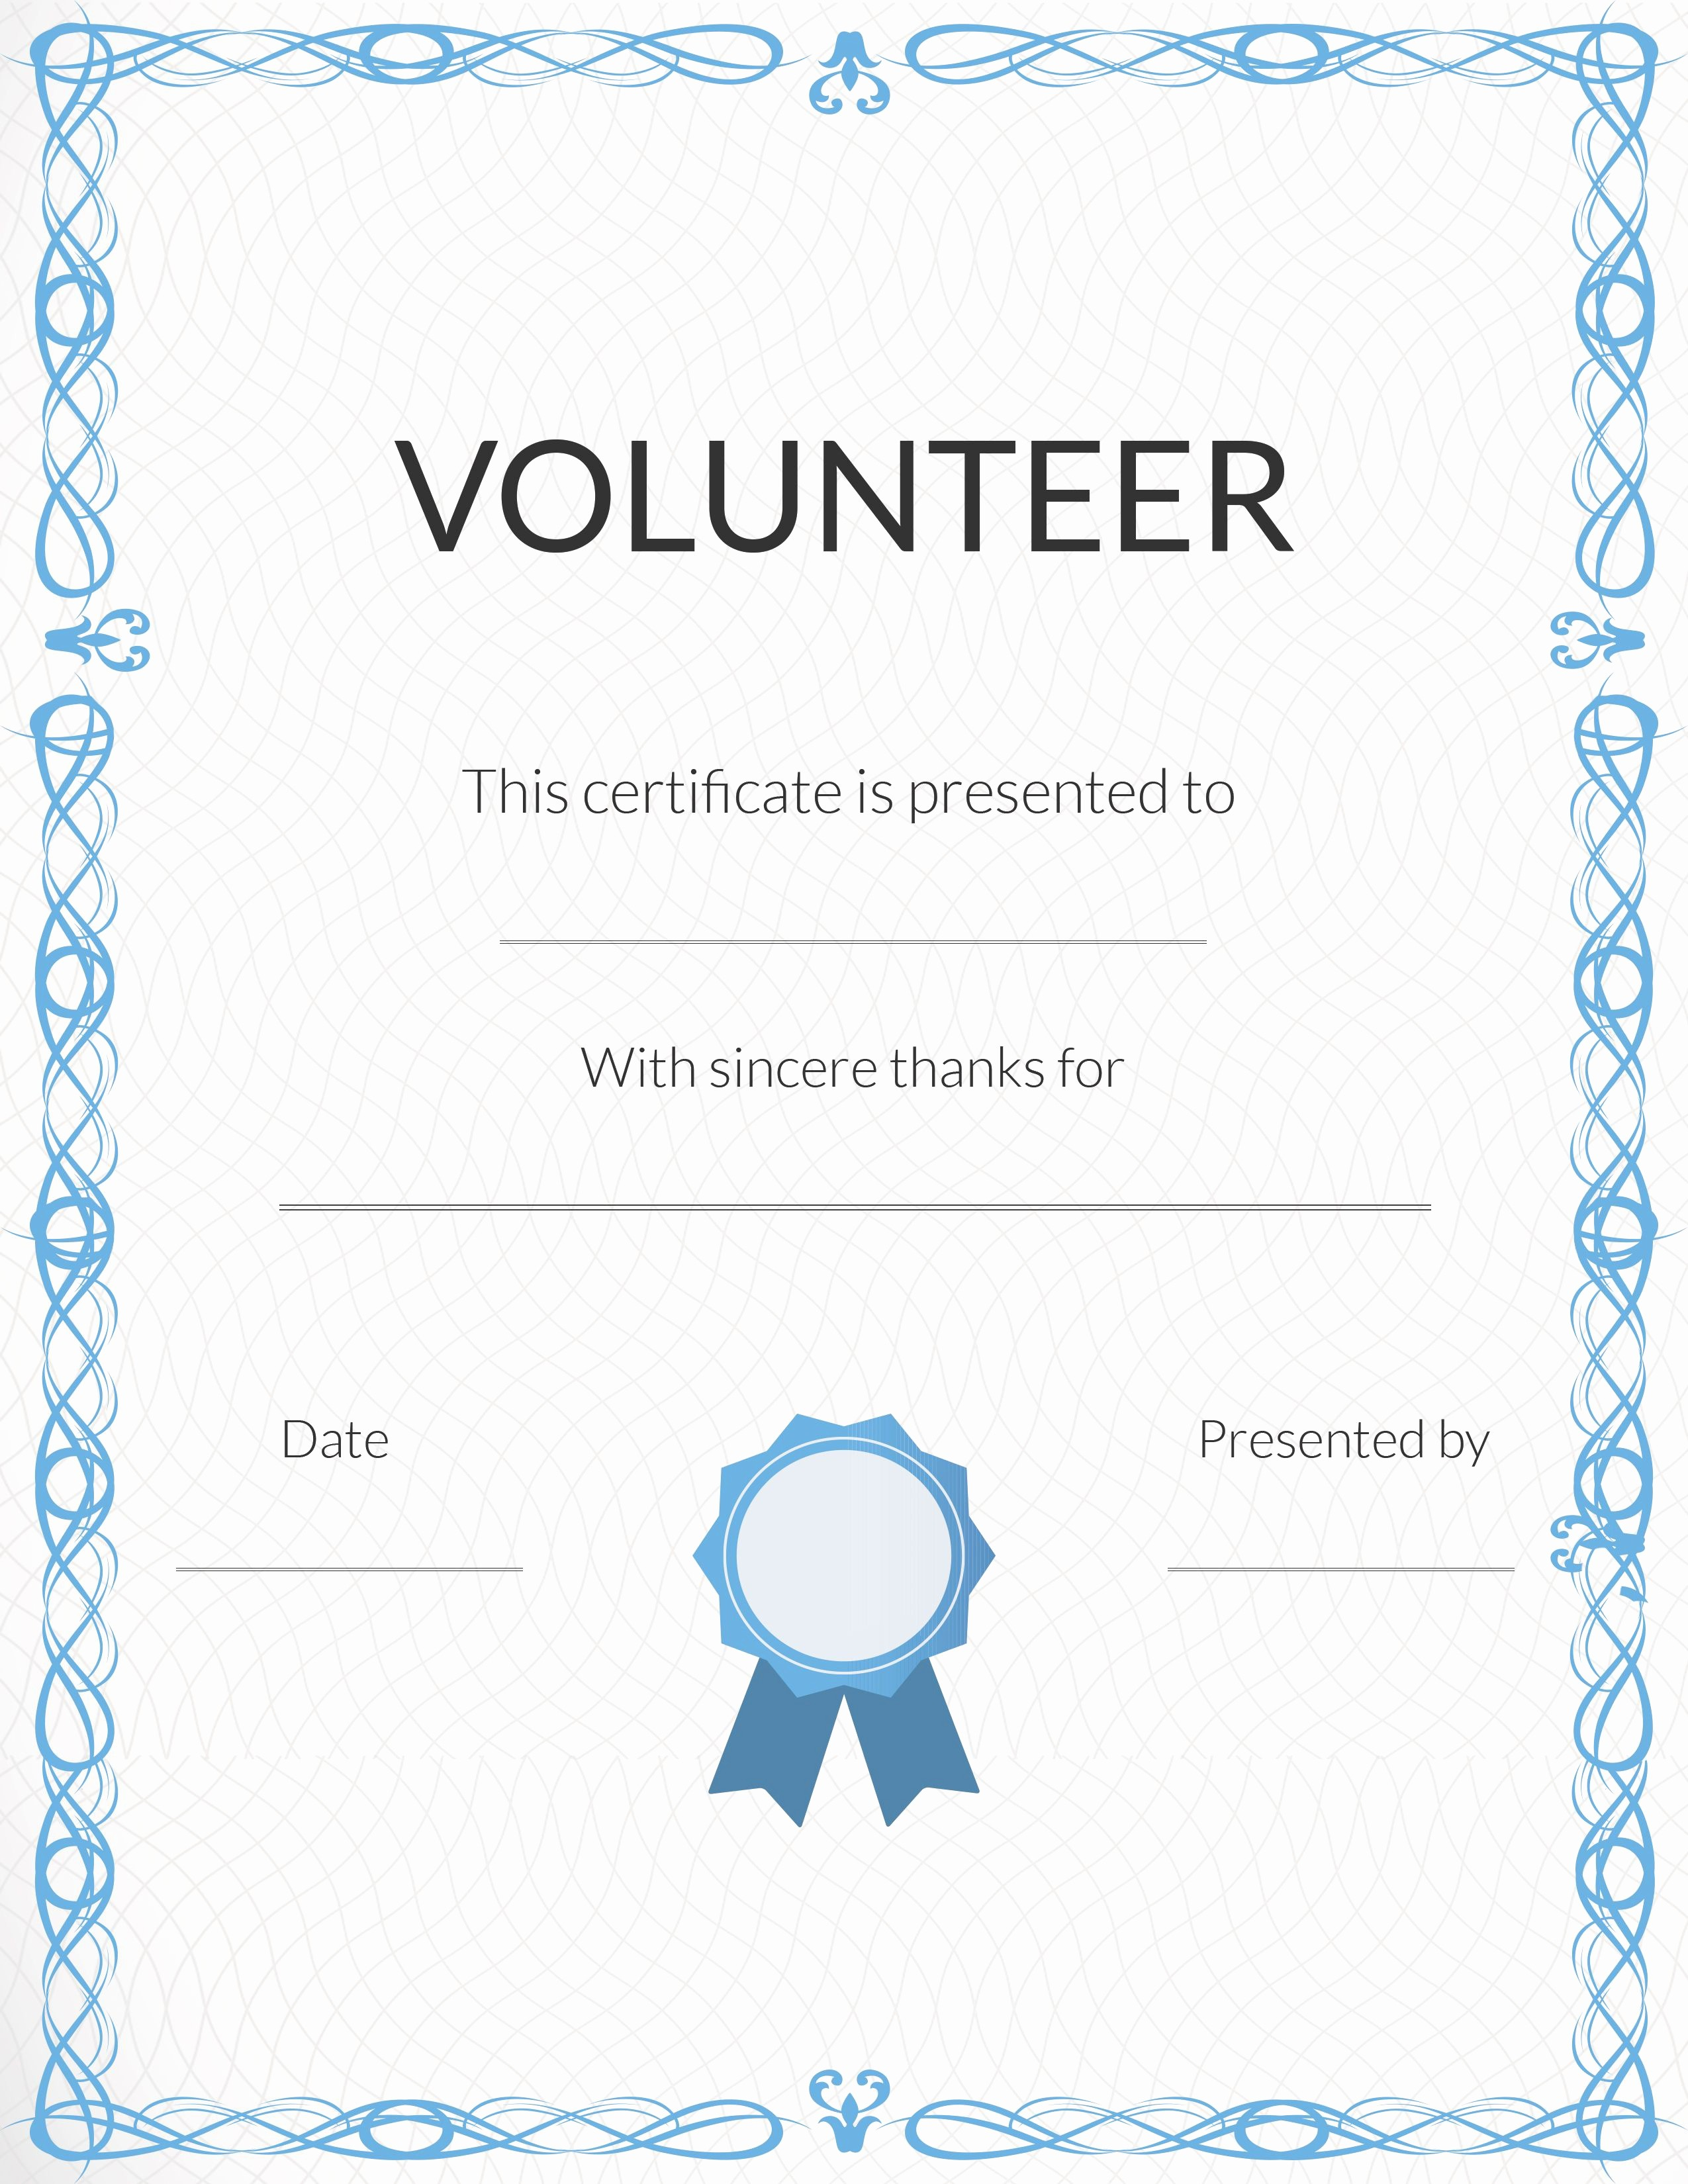 Printable Certificate Of Appreciation Template New Free Volunteer Appreciation Certificates — Signup